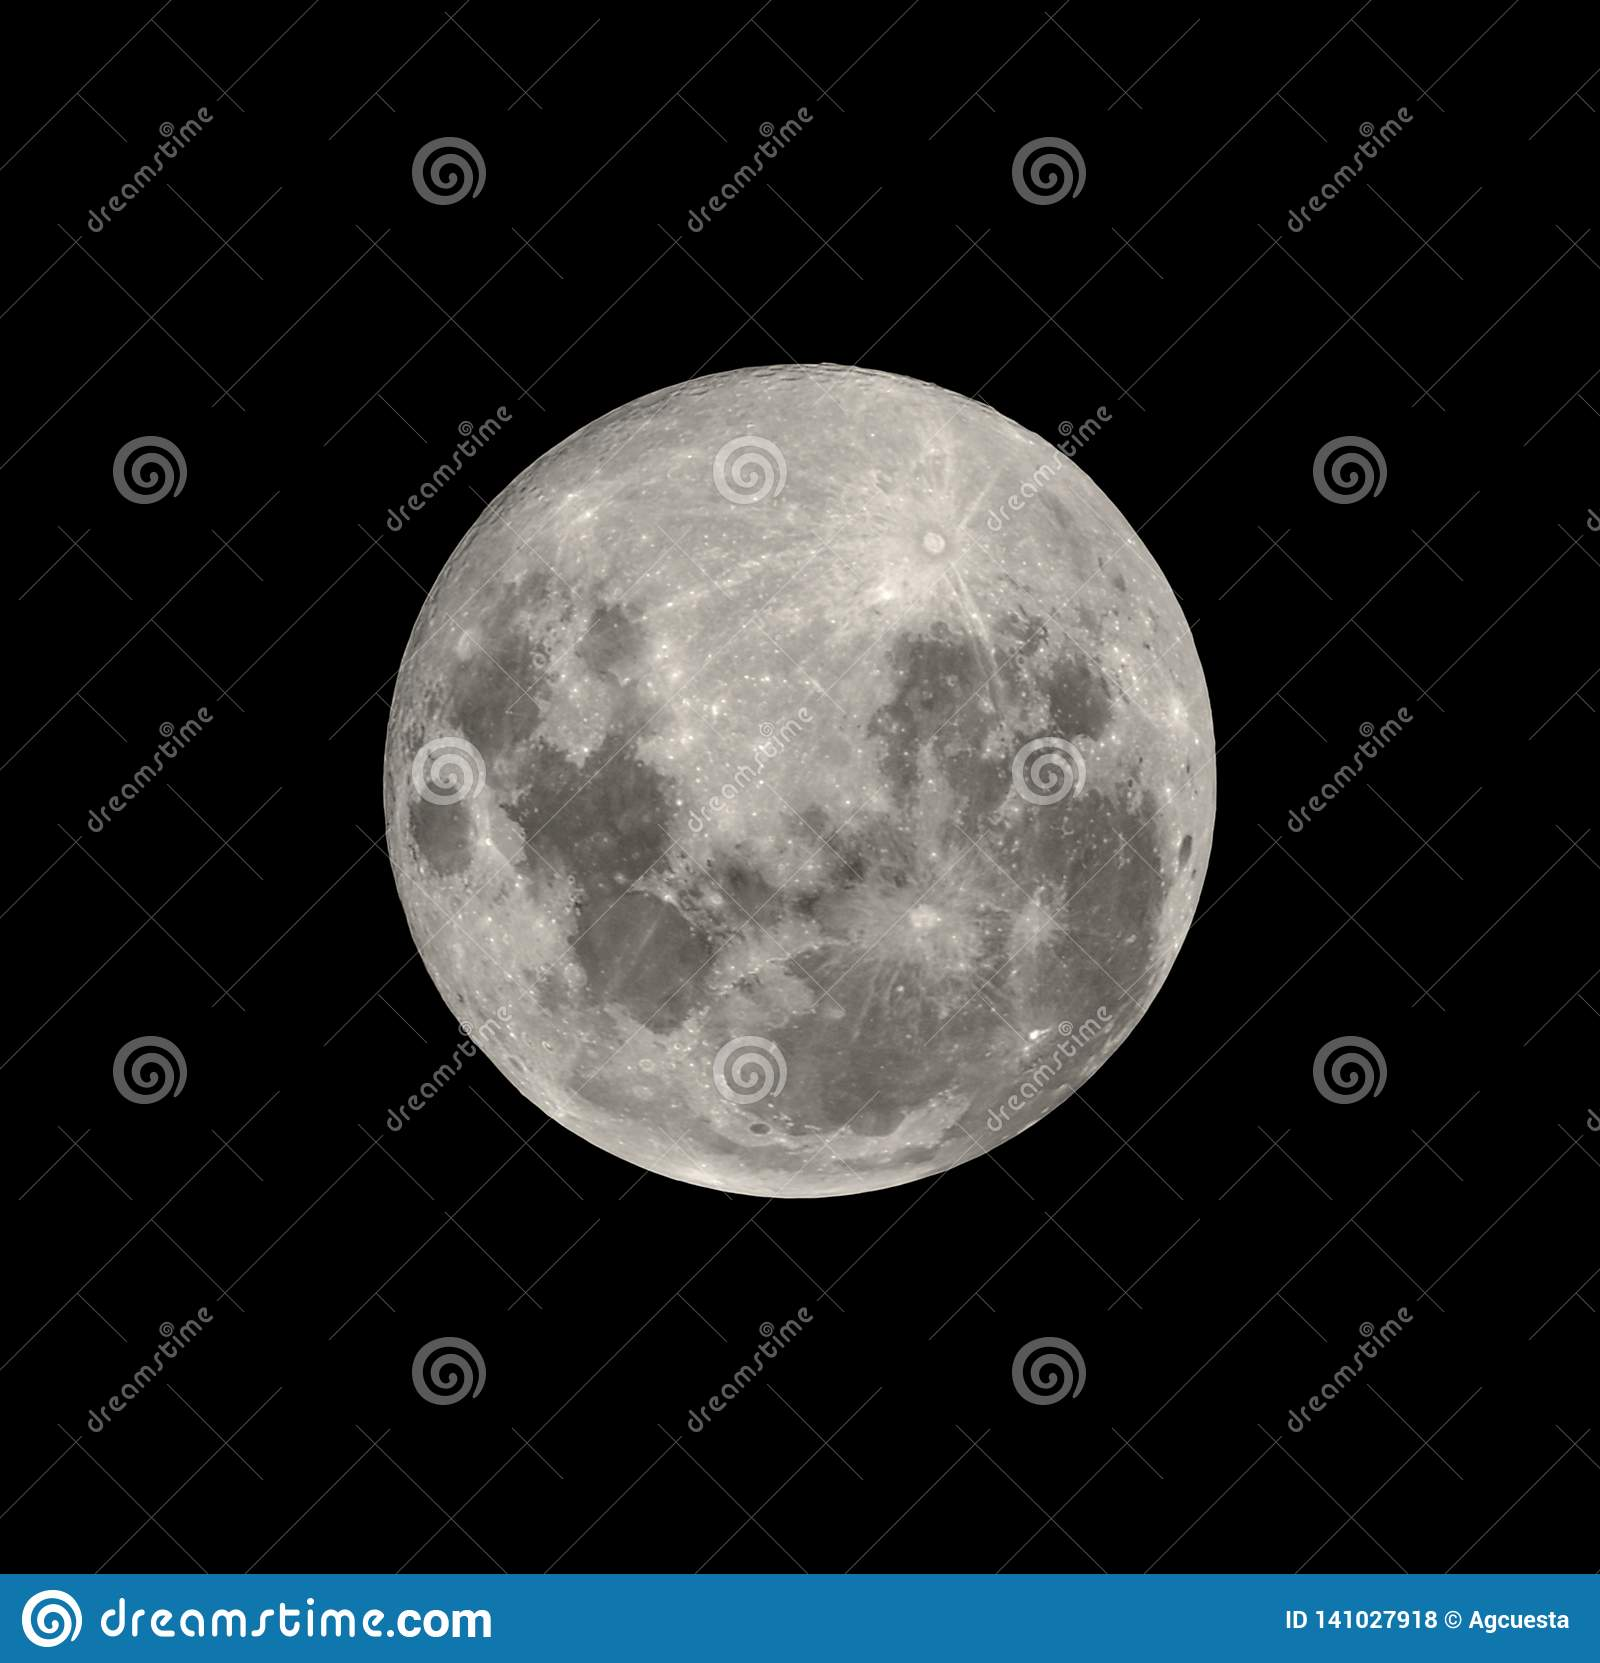 Full moon from southern hemisphere isolated on black